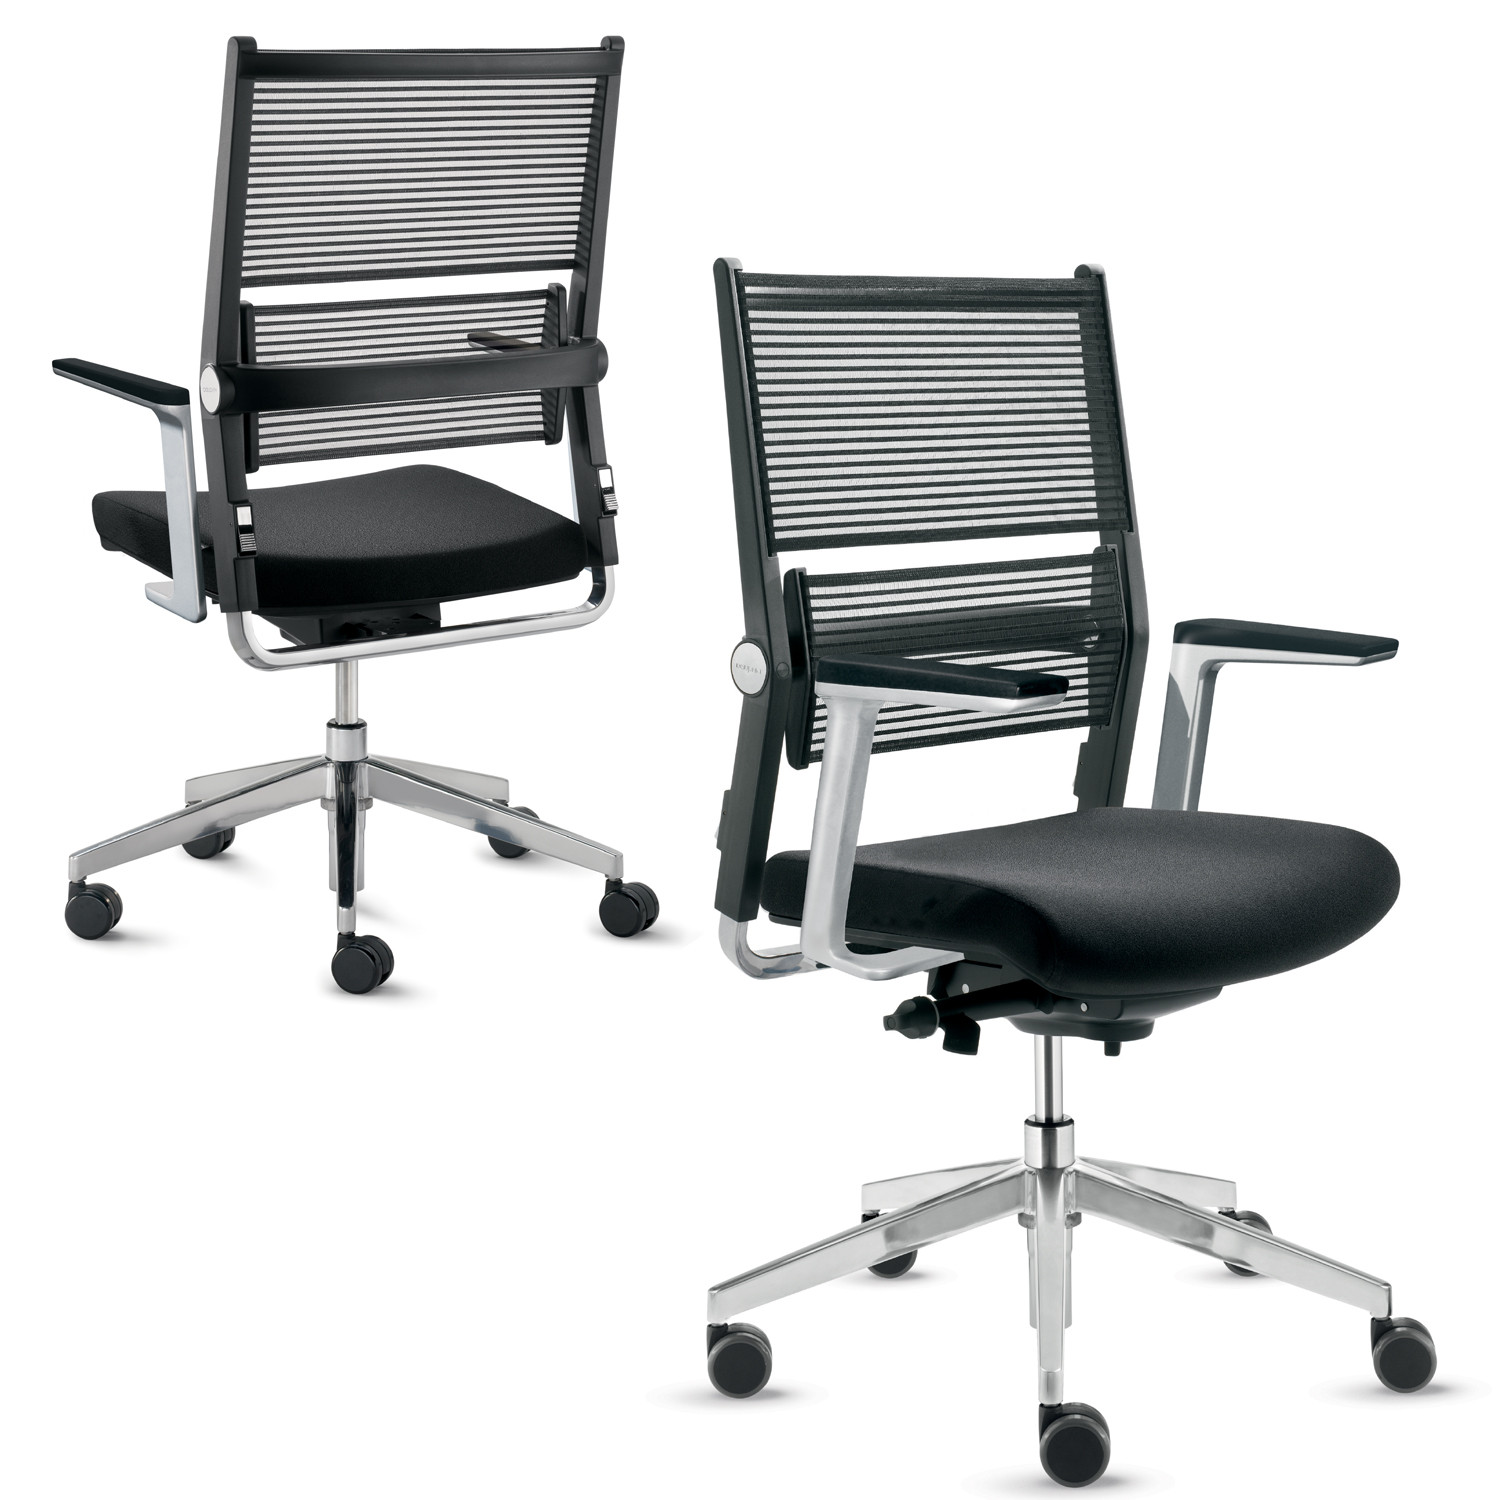 Lordo Conference Chairs